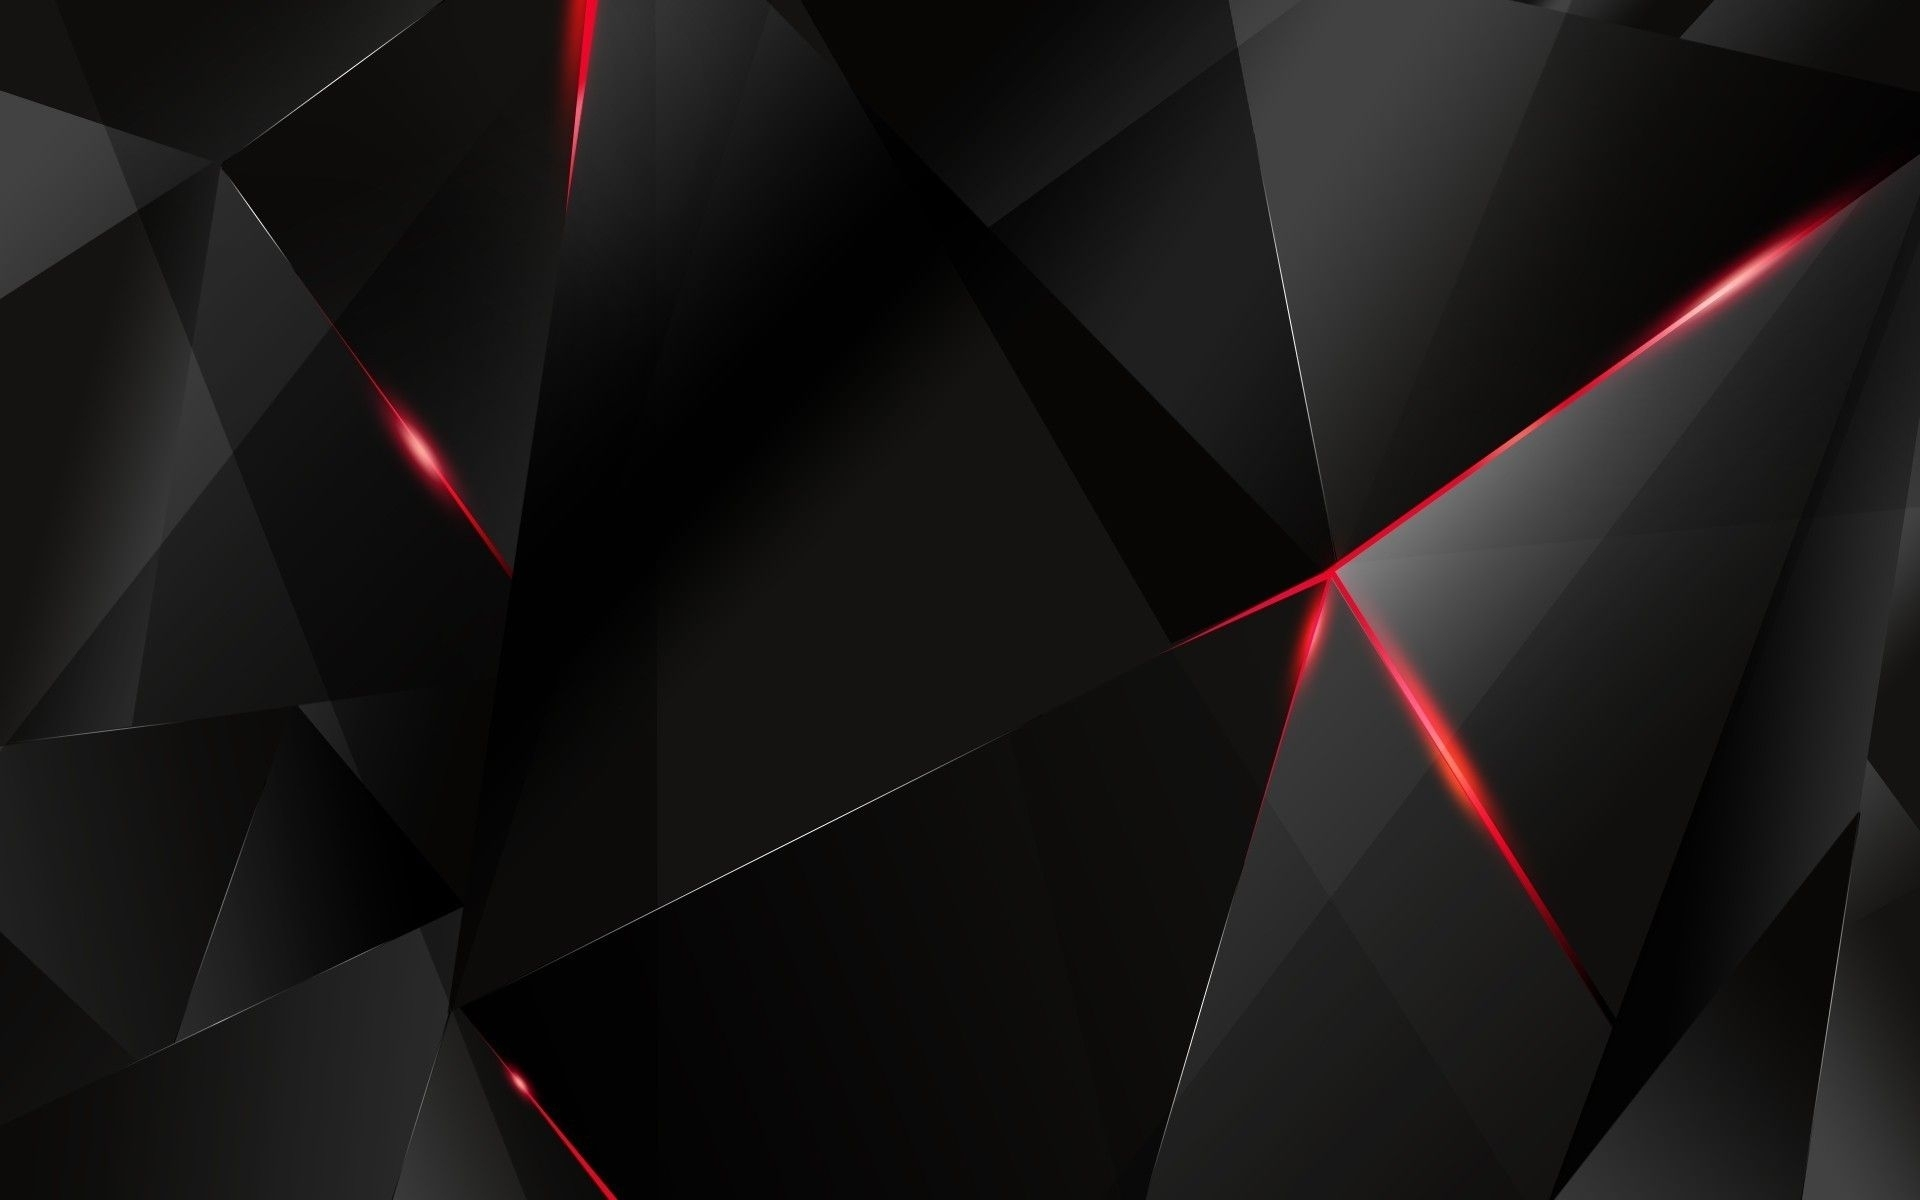 10 Top Black And Red Theme Wallpaper FULL HD 1080p For PC Desktop